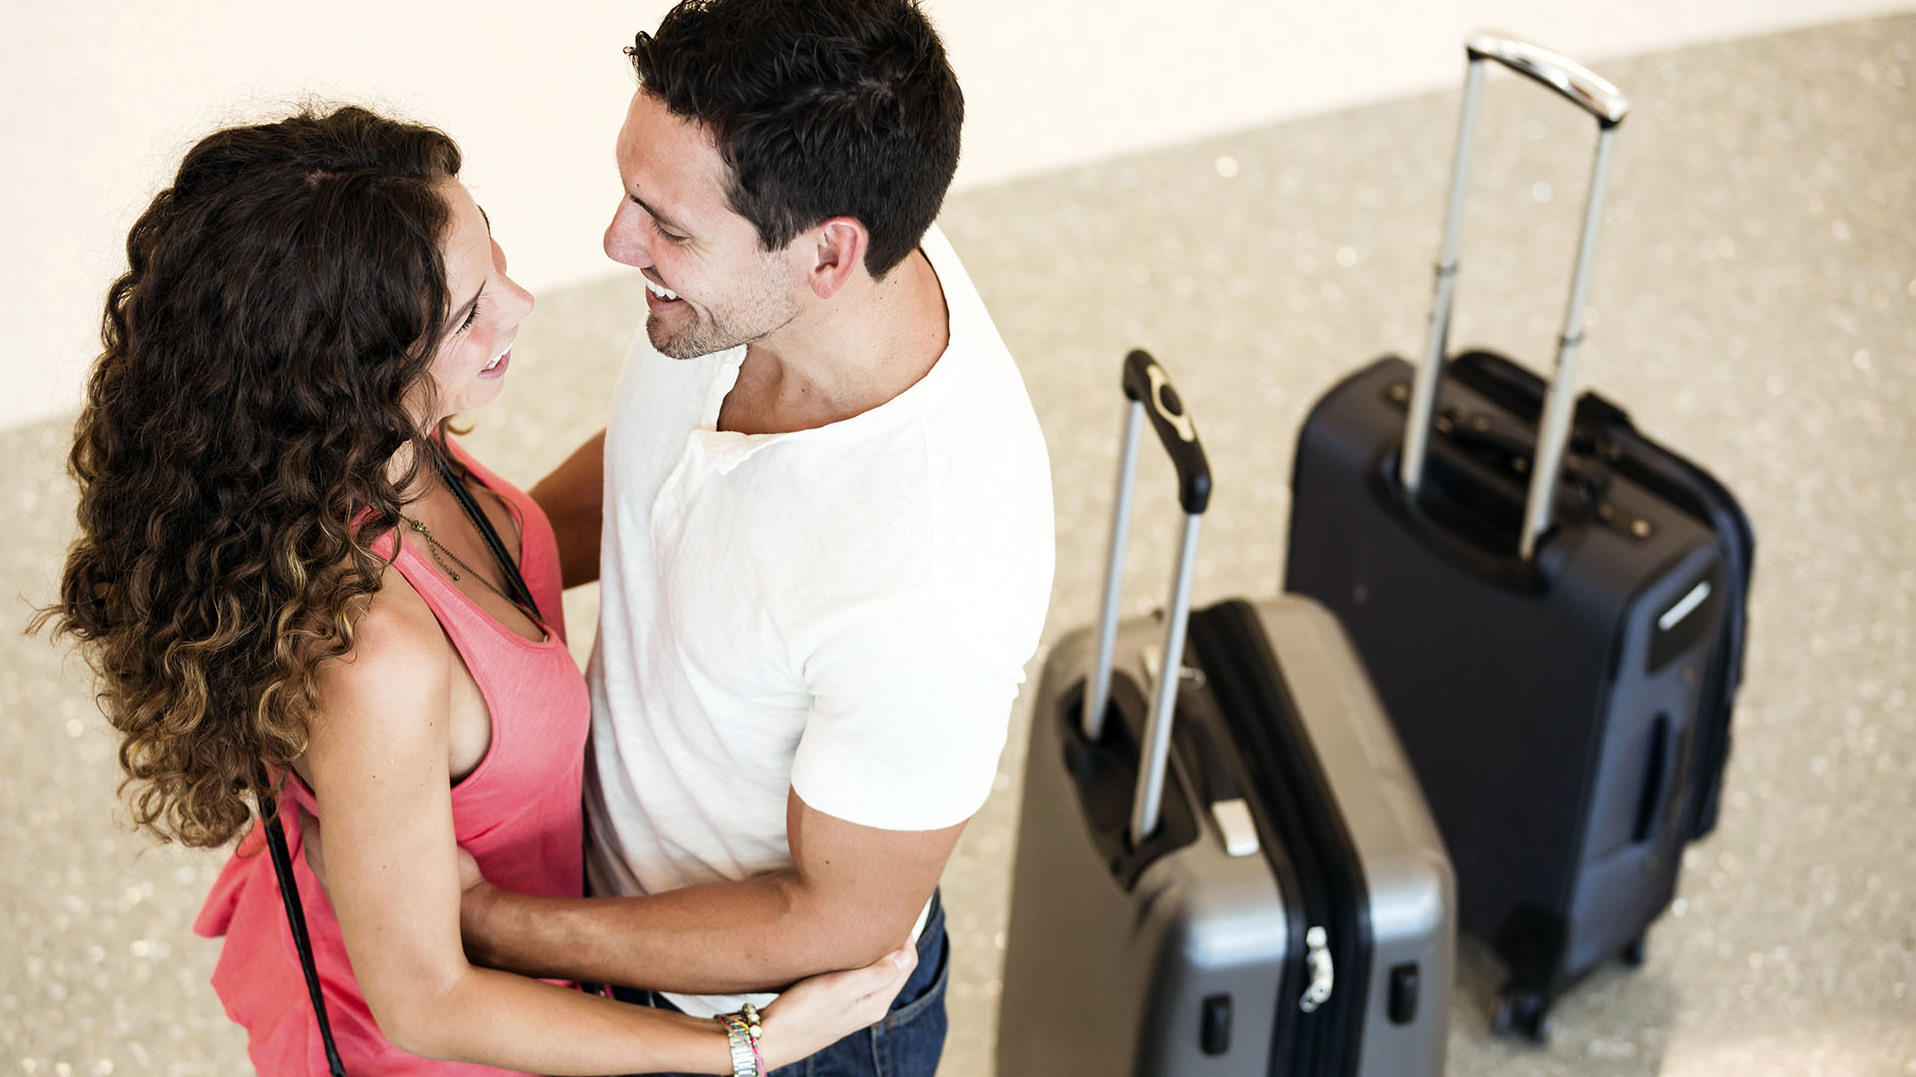 8 Survival tips for couples constantly separated by business